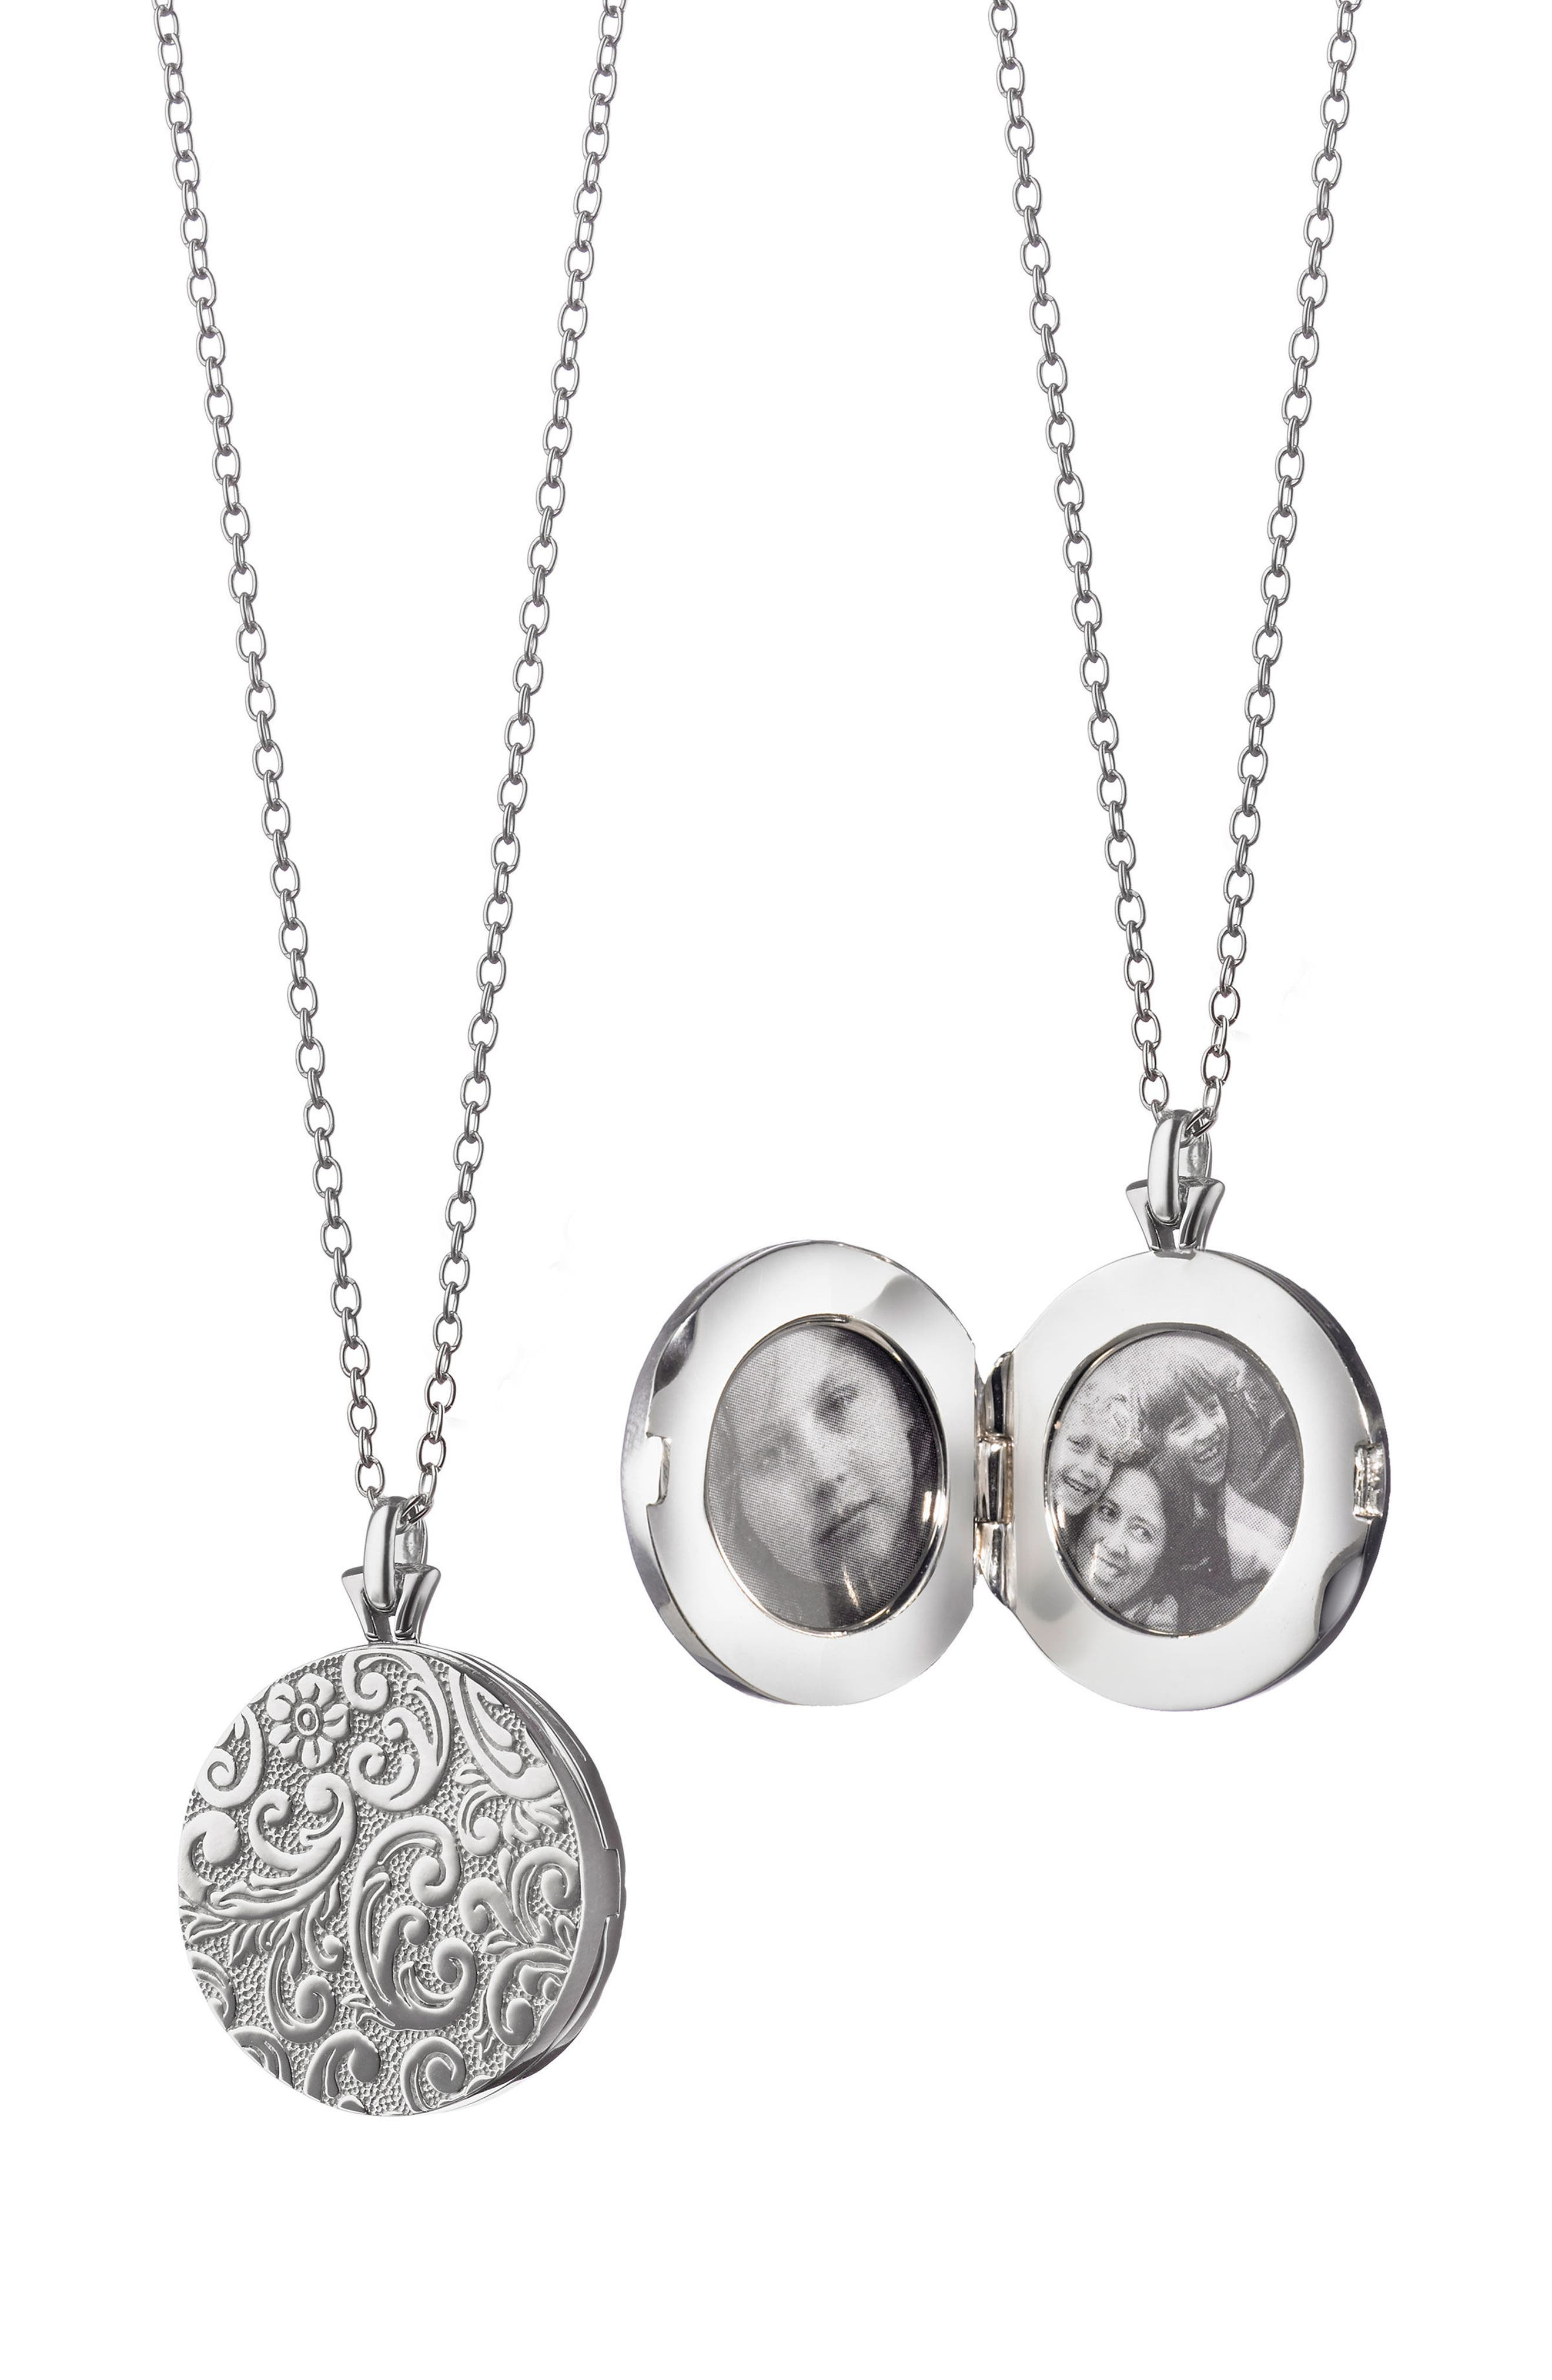 Round Floral Locket Necklace,                             Main thumbnail 1, color,                             Sterling Silver